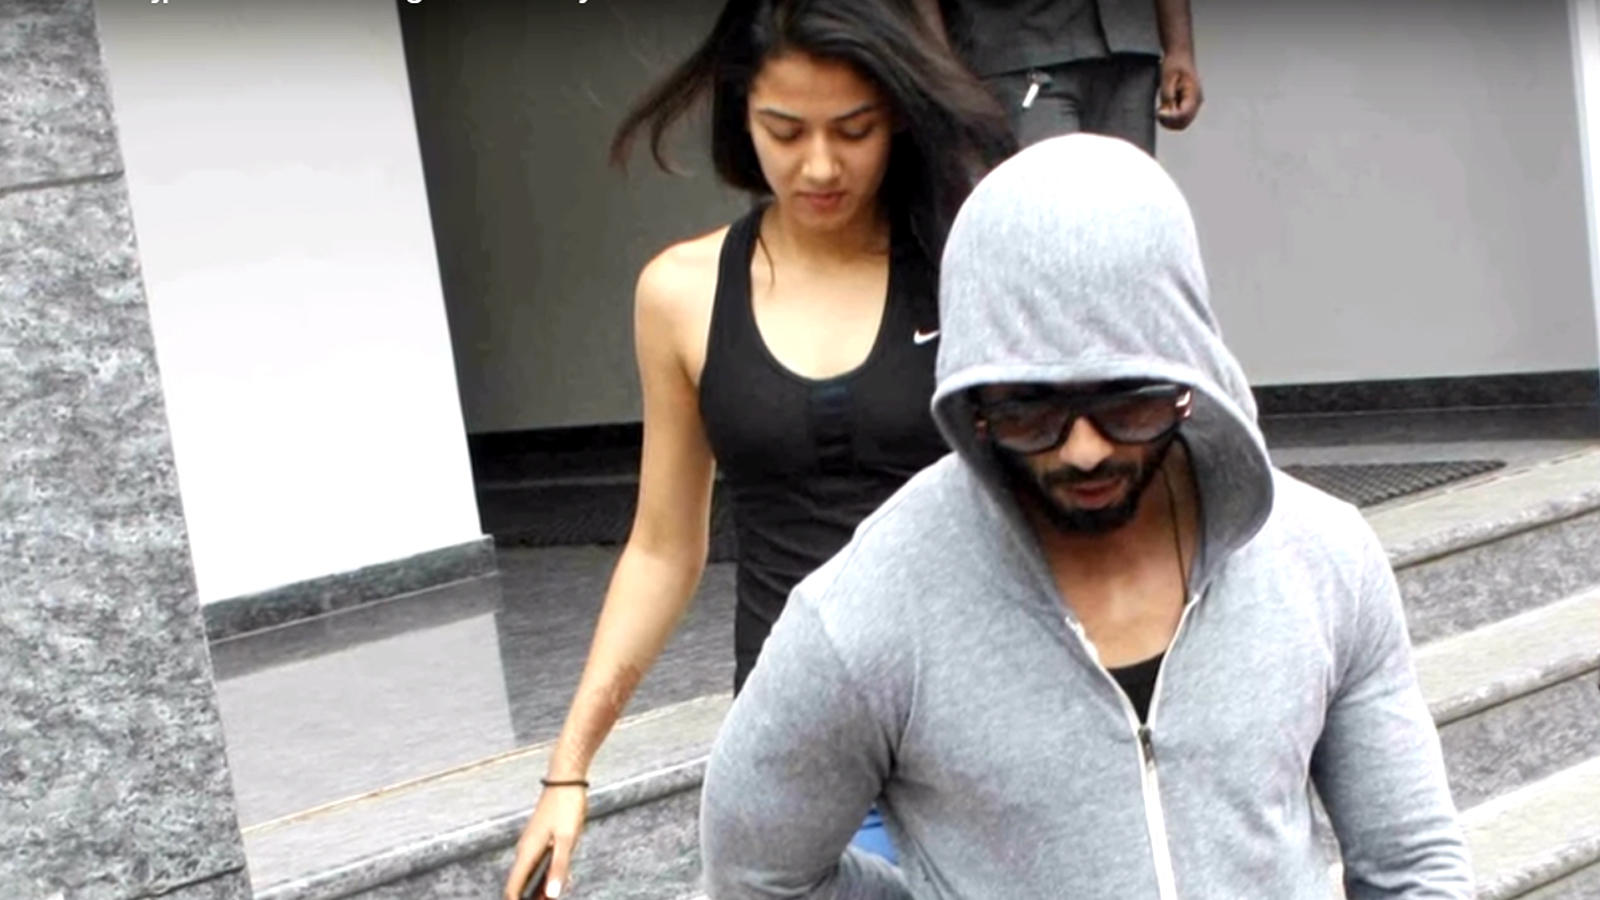 Shahid Kapoor and wifey Mira Rajput turn entrepreneurs, invest in yoga and wellness startup